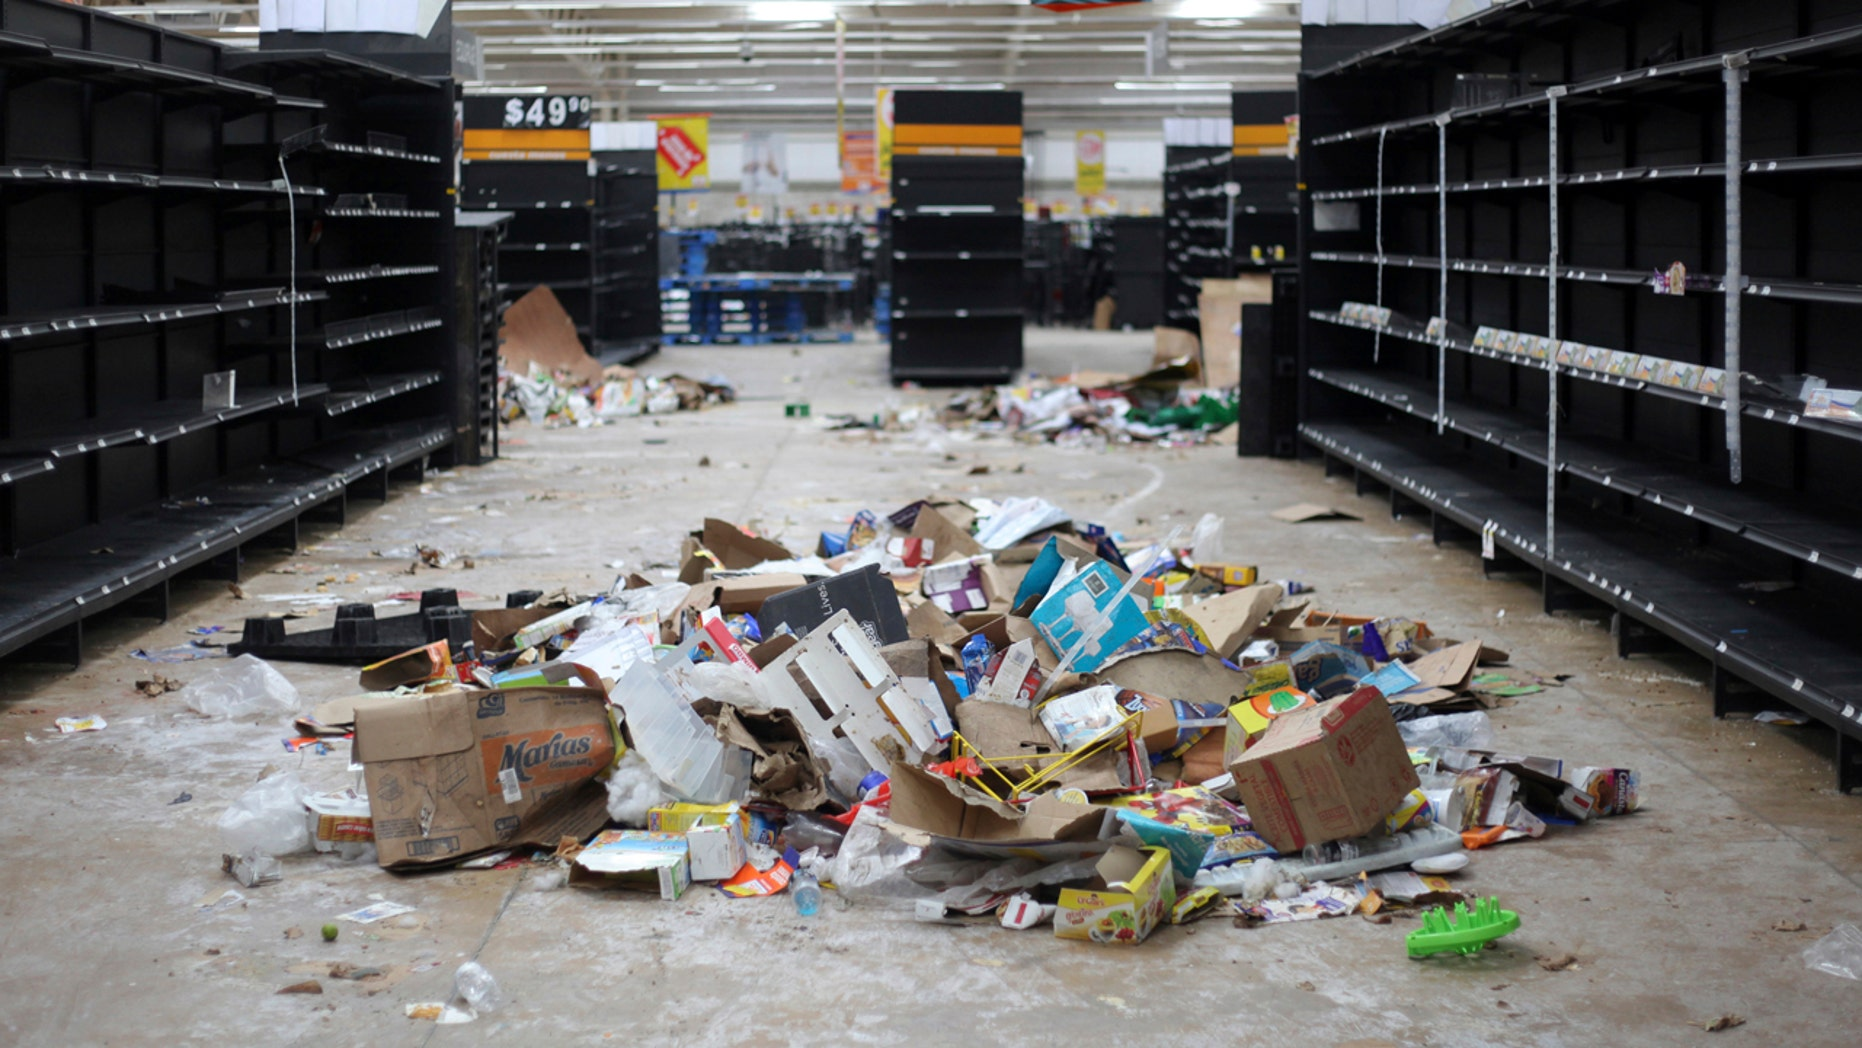 Supermarket displays stand empty and looted following protests caused by a 20 percent hike in gasoline prices, in Veracruz, Mexico, Saturday, Jan. 7, 2017.